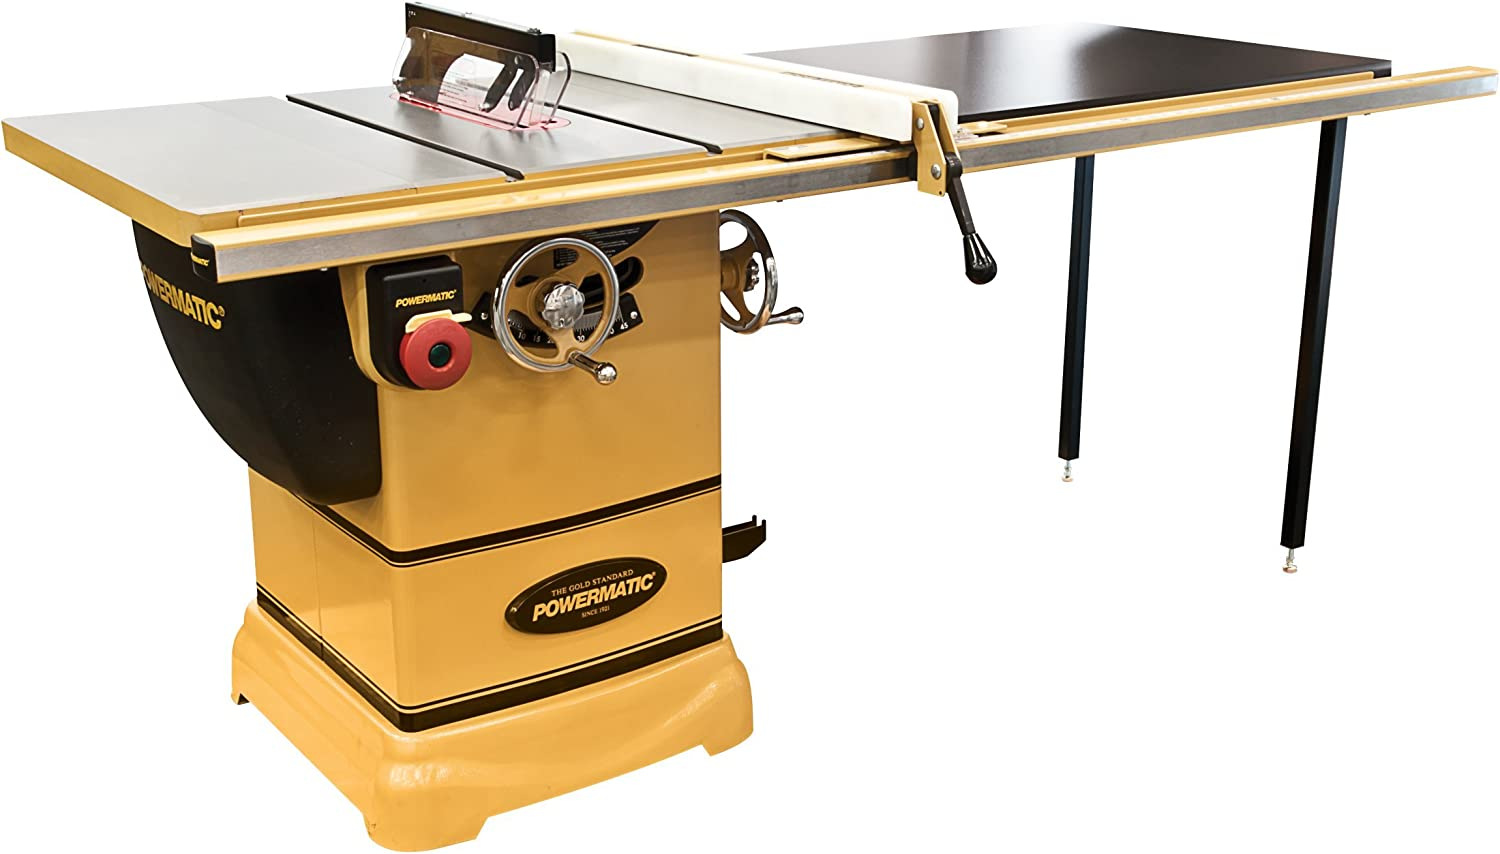 Powermatic PM1000 Table Saws product image 1